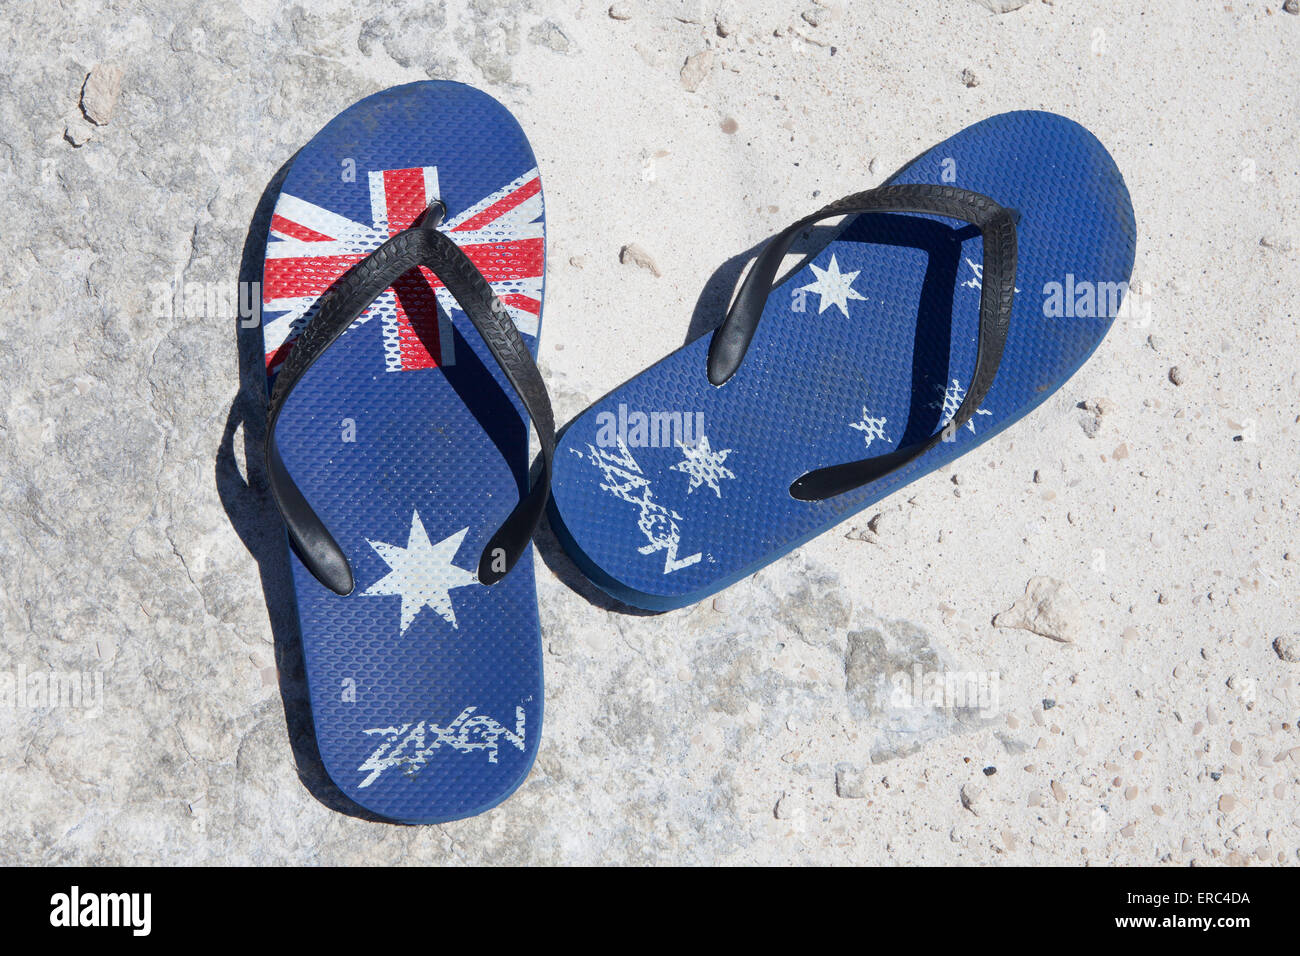 43dbde98eb8b Australian flag flip-flops  thongs  type sandals Stock Photo ...